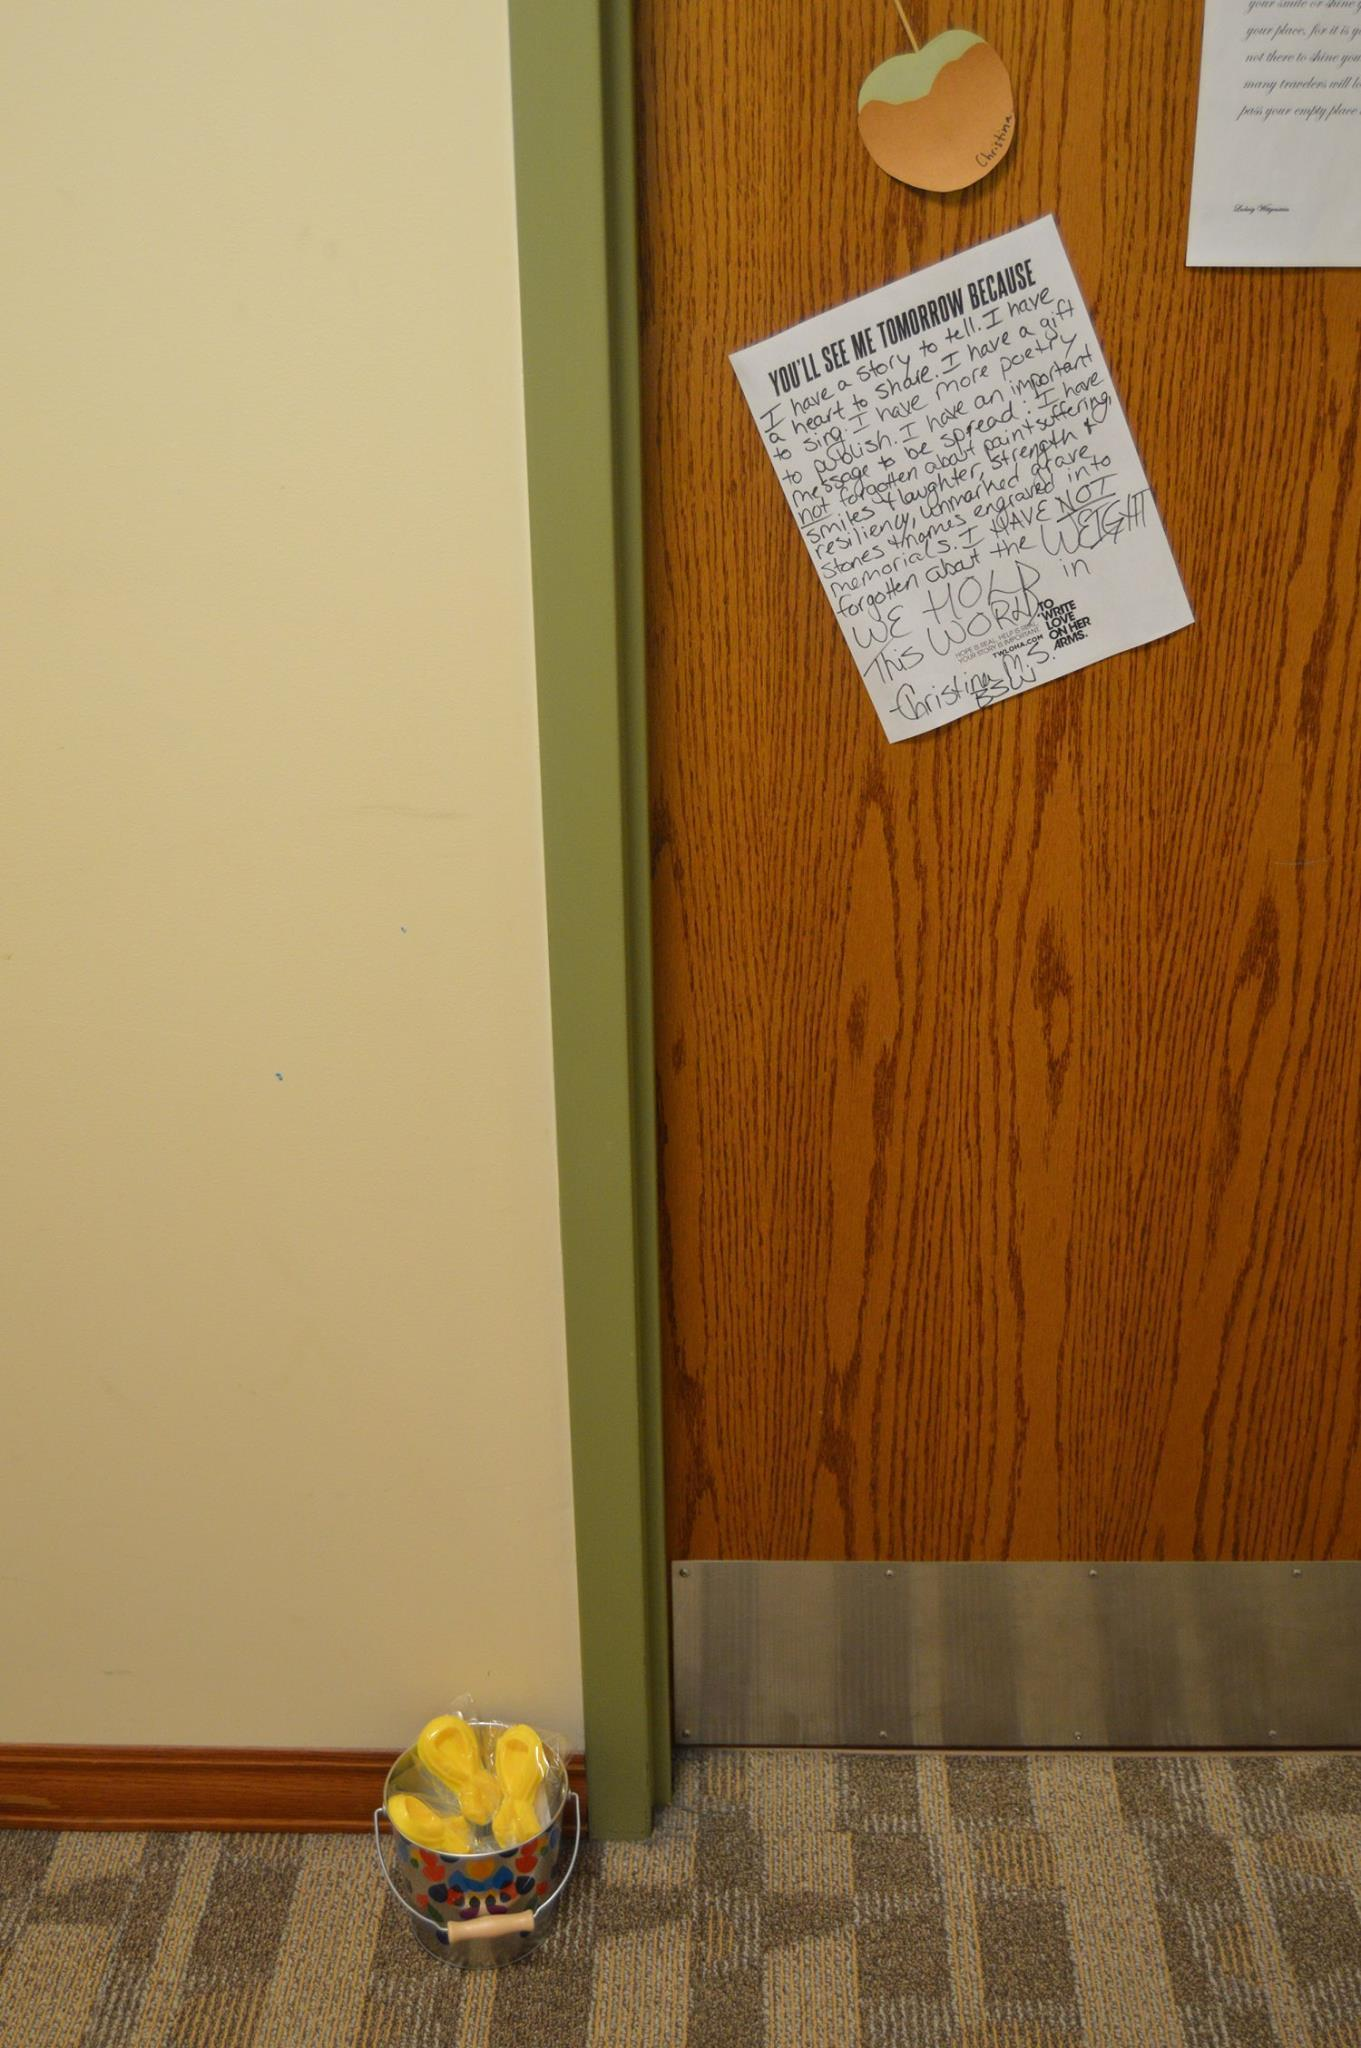 Outside of Christina's dorm door a can of lollipops and awareness signs on her door.